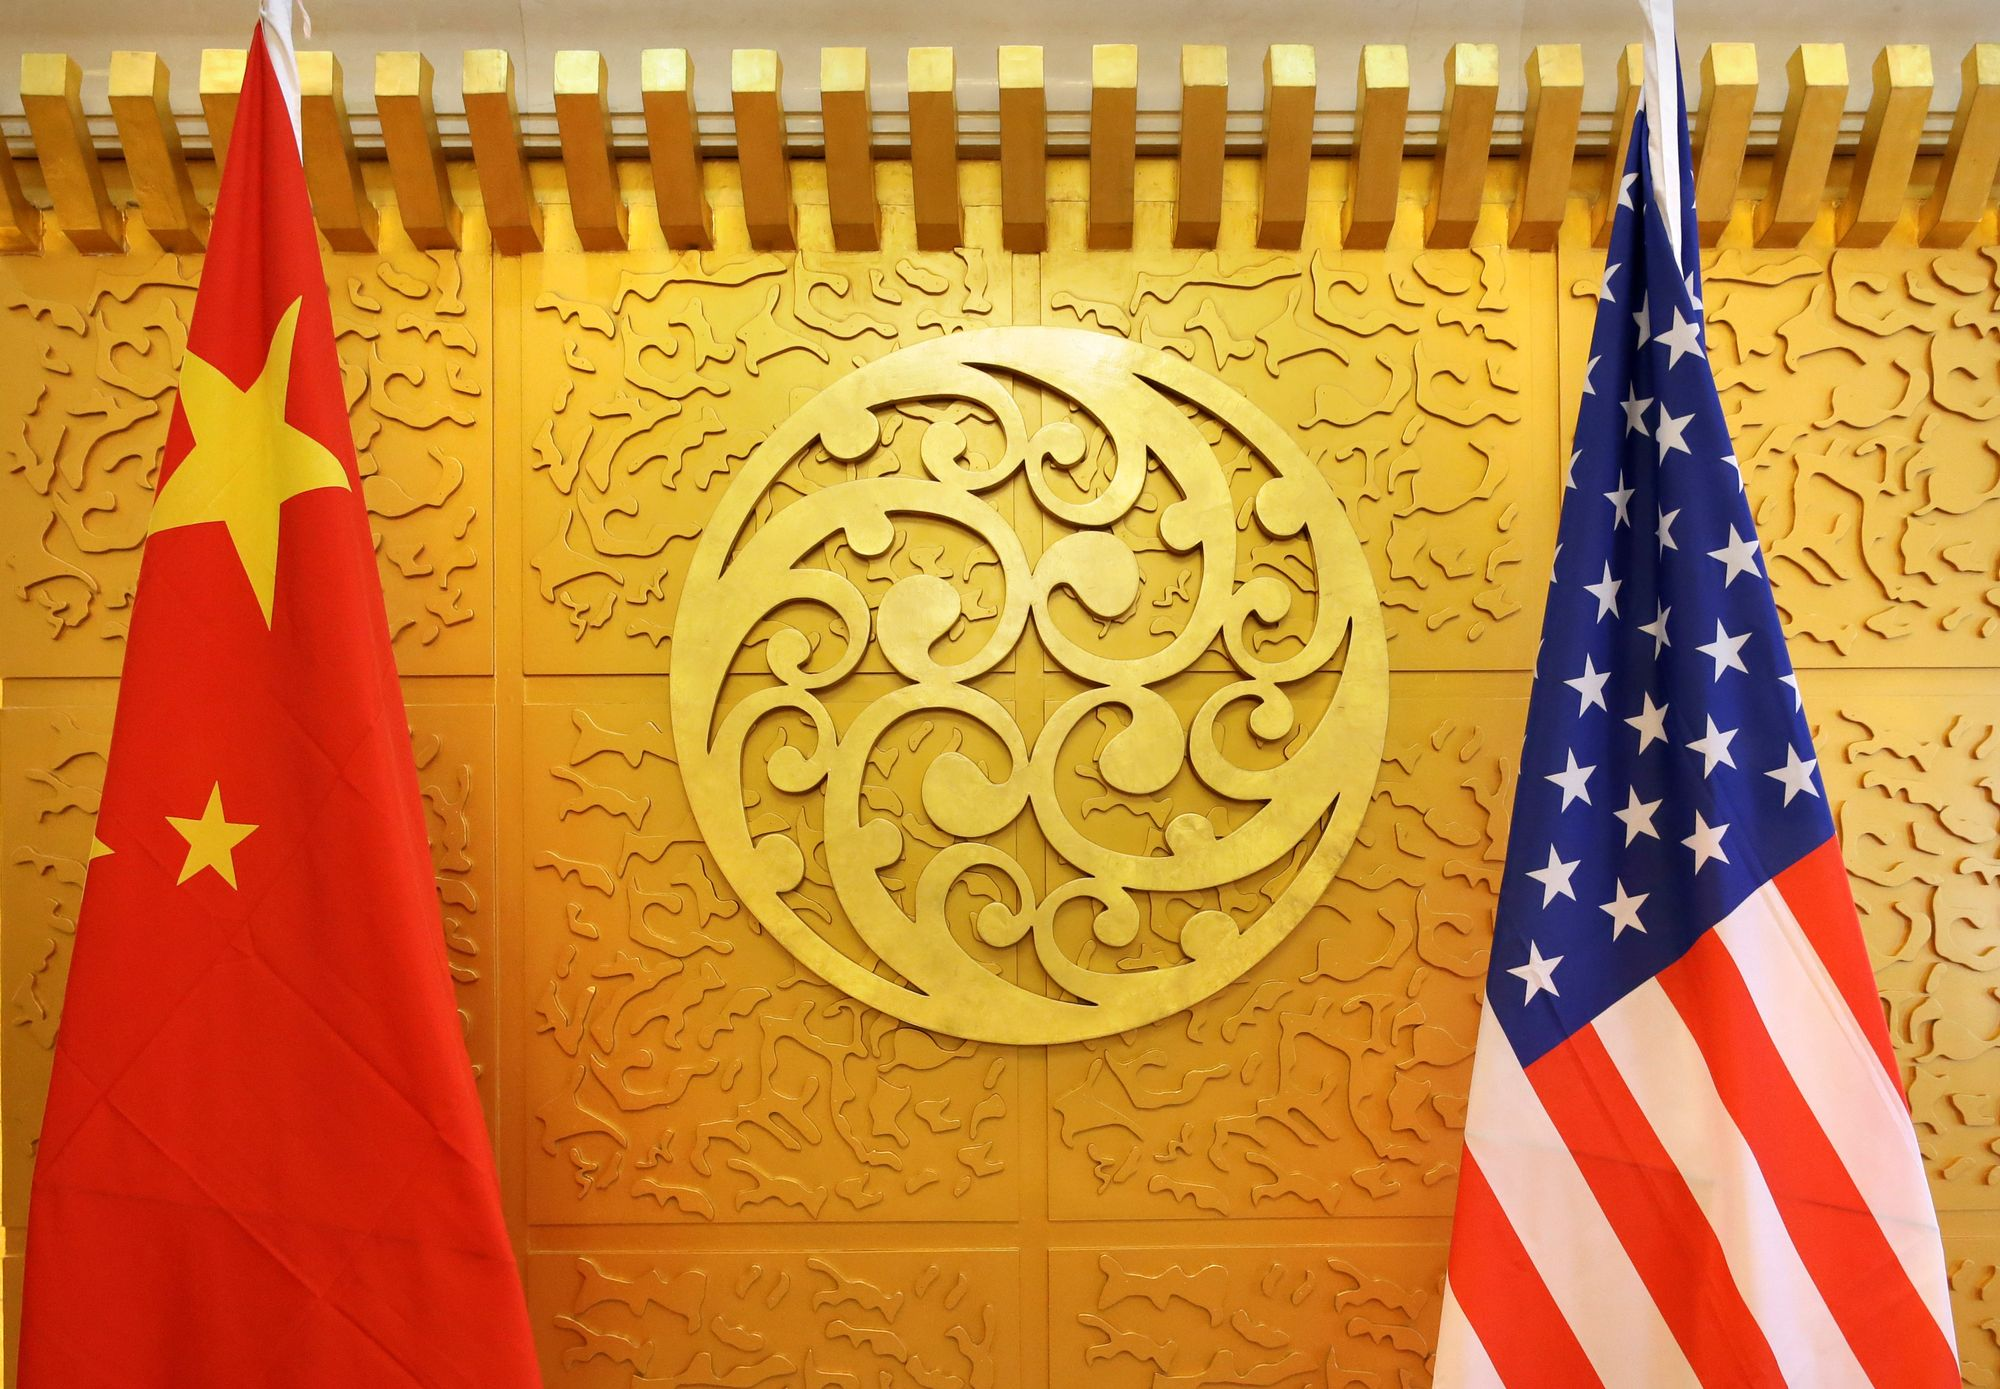 La tension entre la Chine et les Etats-Unis se poursuit.